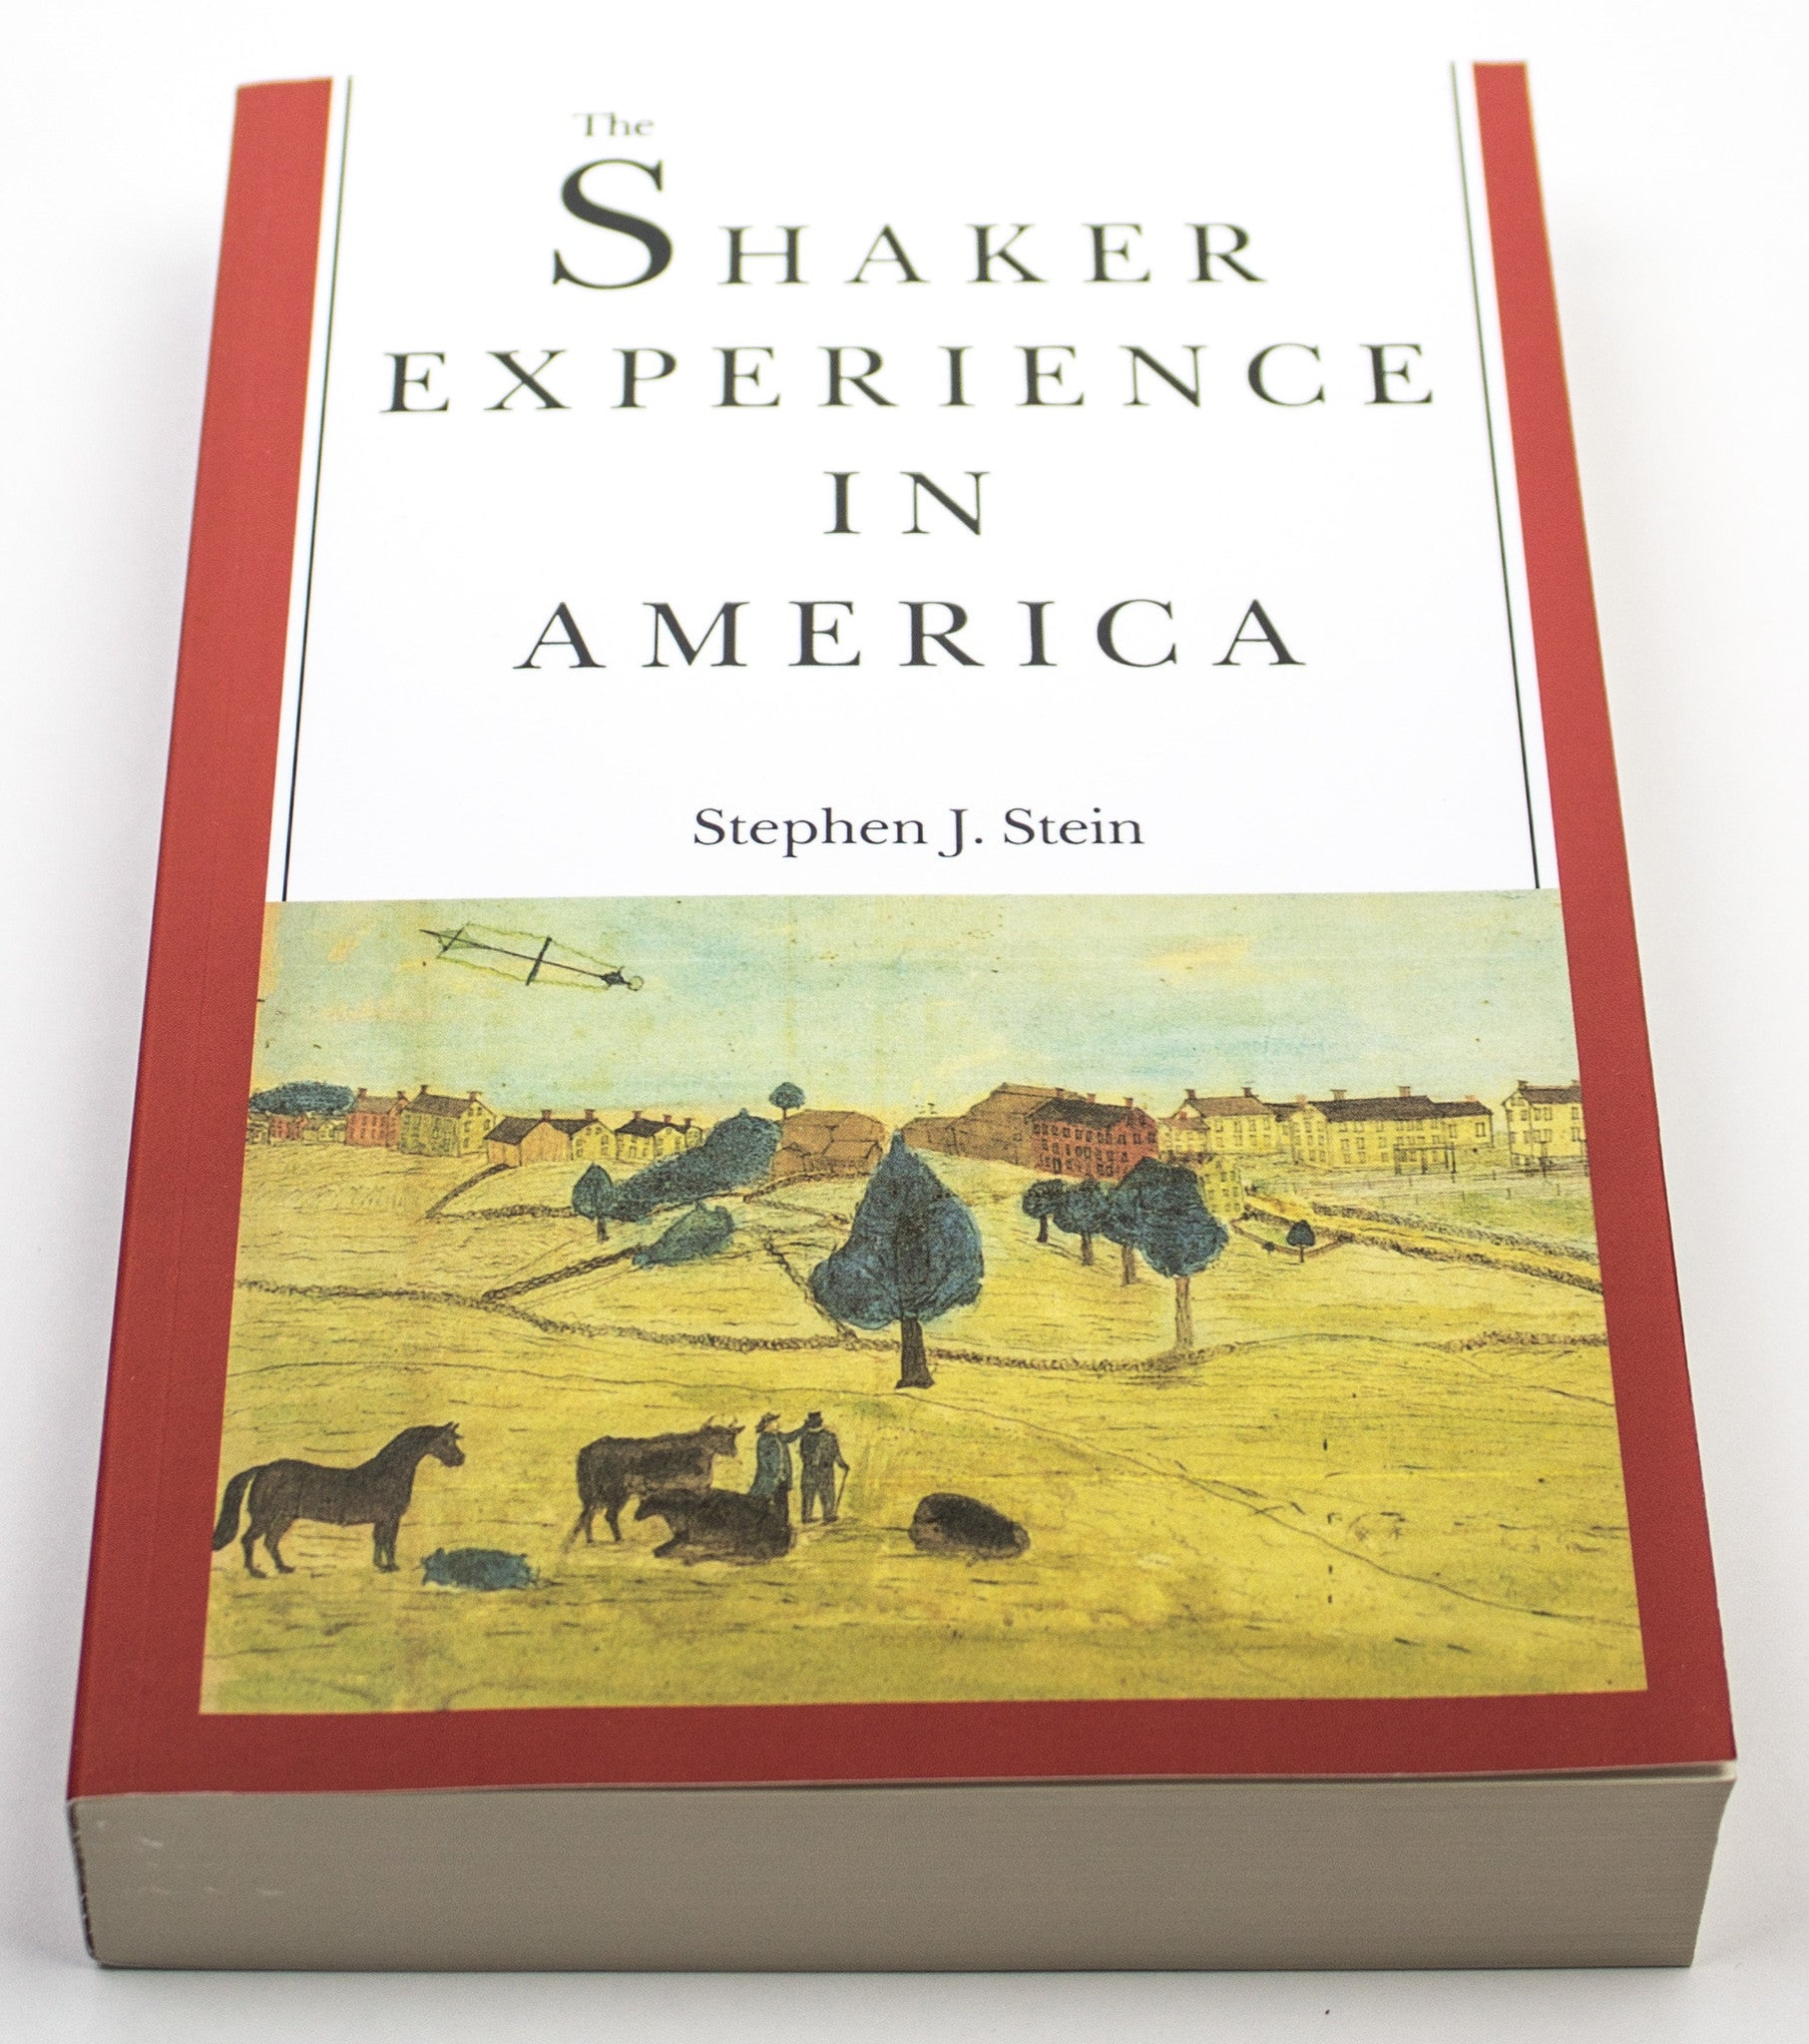 The Shaker Experience in America